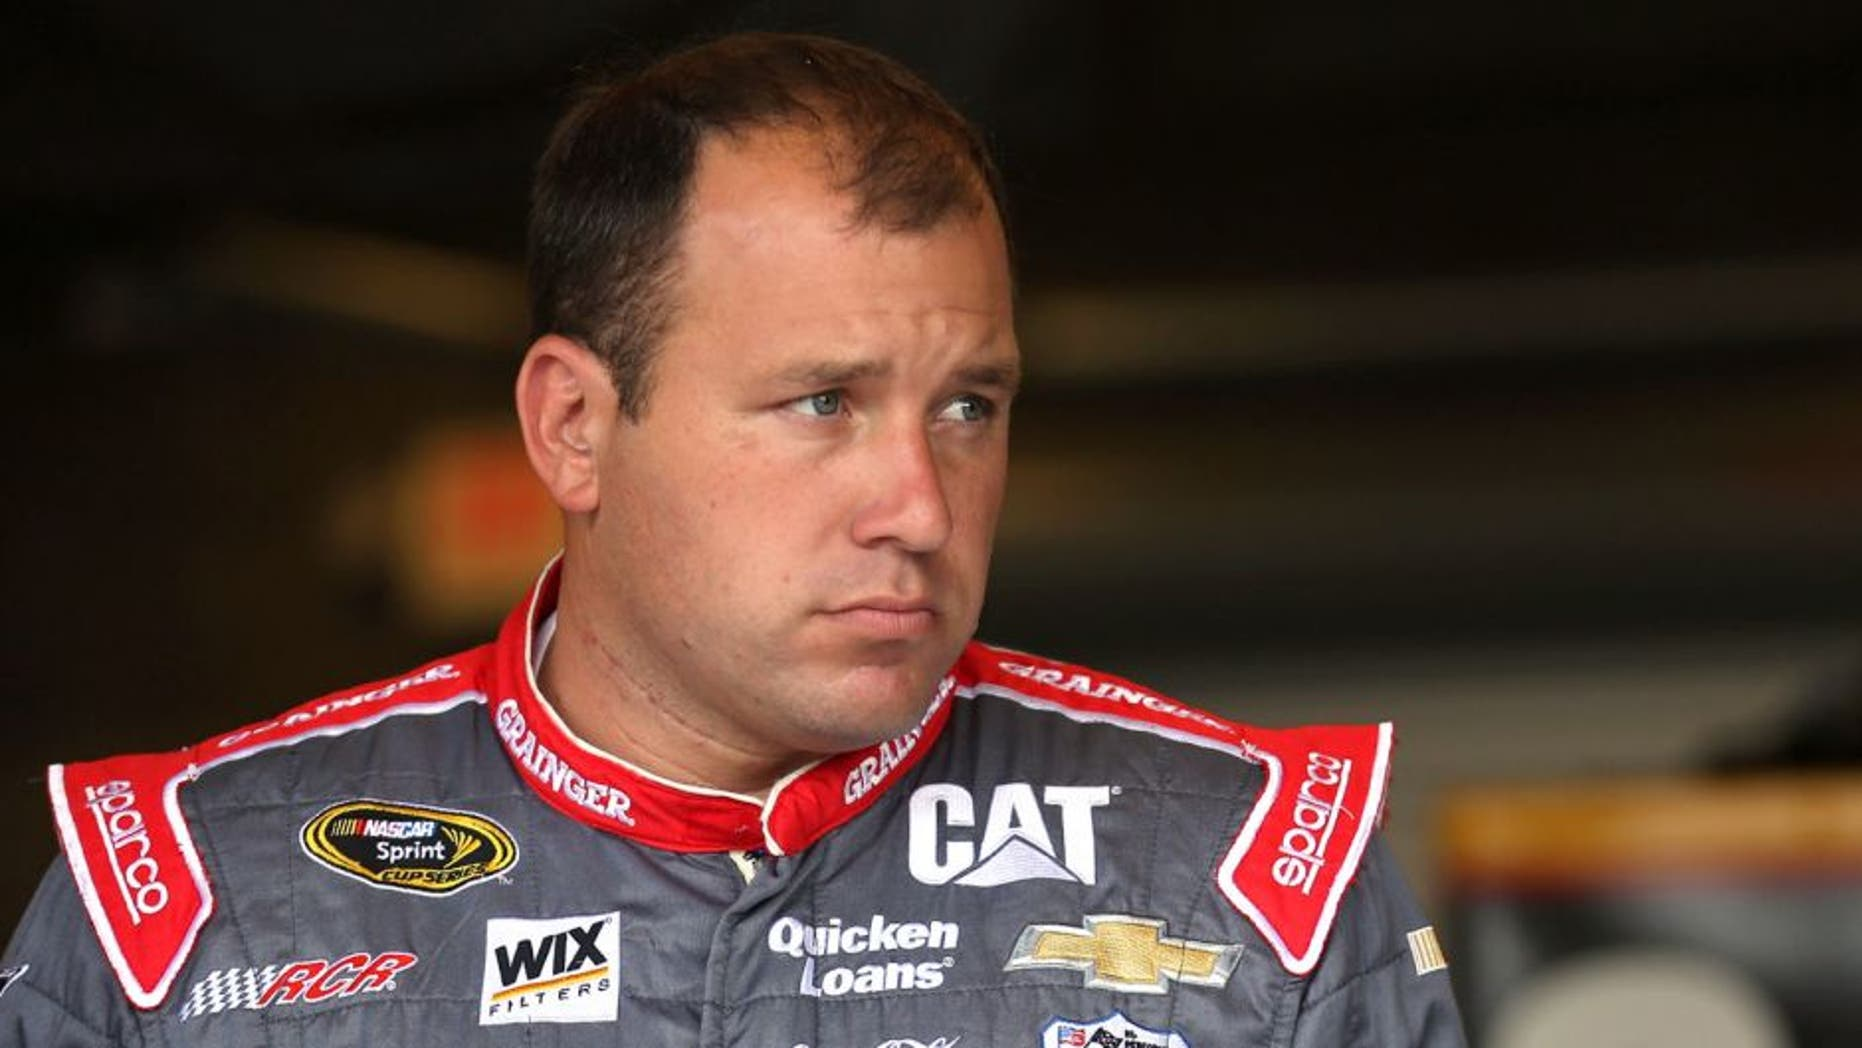 INDIANAPOLIS, IN - JULY 24: Ryan Newman, driver of the #31 Grainger Chevrolet, stands in the garage area during practice for the NASCAR Sprint Cup Series Crown Royal Presents the Jeff Kyle 400 at the Brickyard at Indianapolis Motorspeedway on July 24, 2015 in Indianapolis, Indiana. (Photo by Chris Graythen/Getty Images)